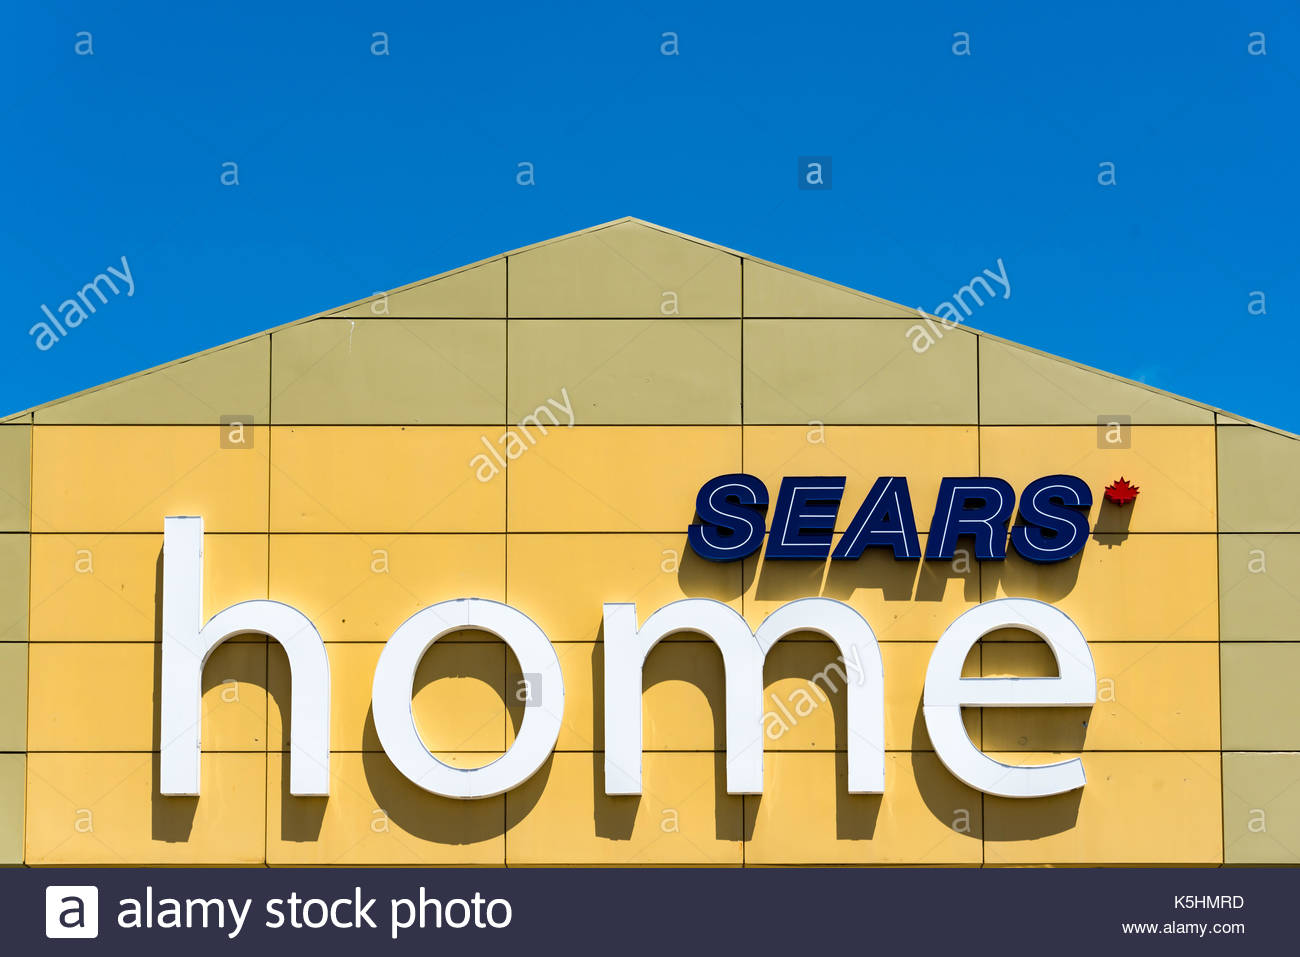 Sears Home store  Sears is an American chain of department stores  Known  for selling. Sears Store Stock Photos   Sears Store Stock Images   Alamy